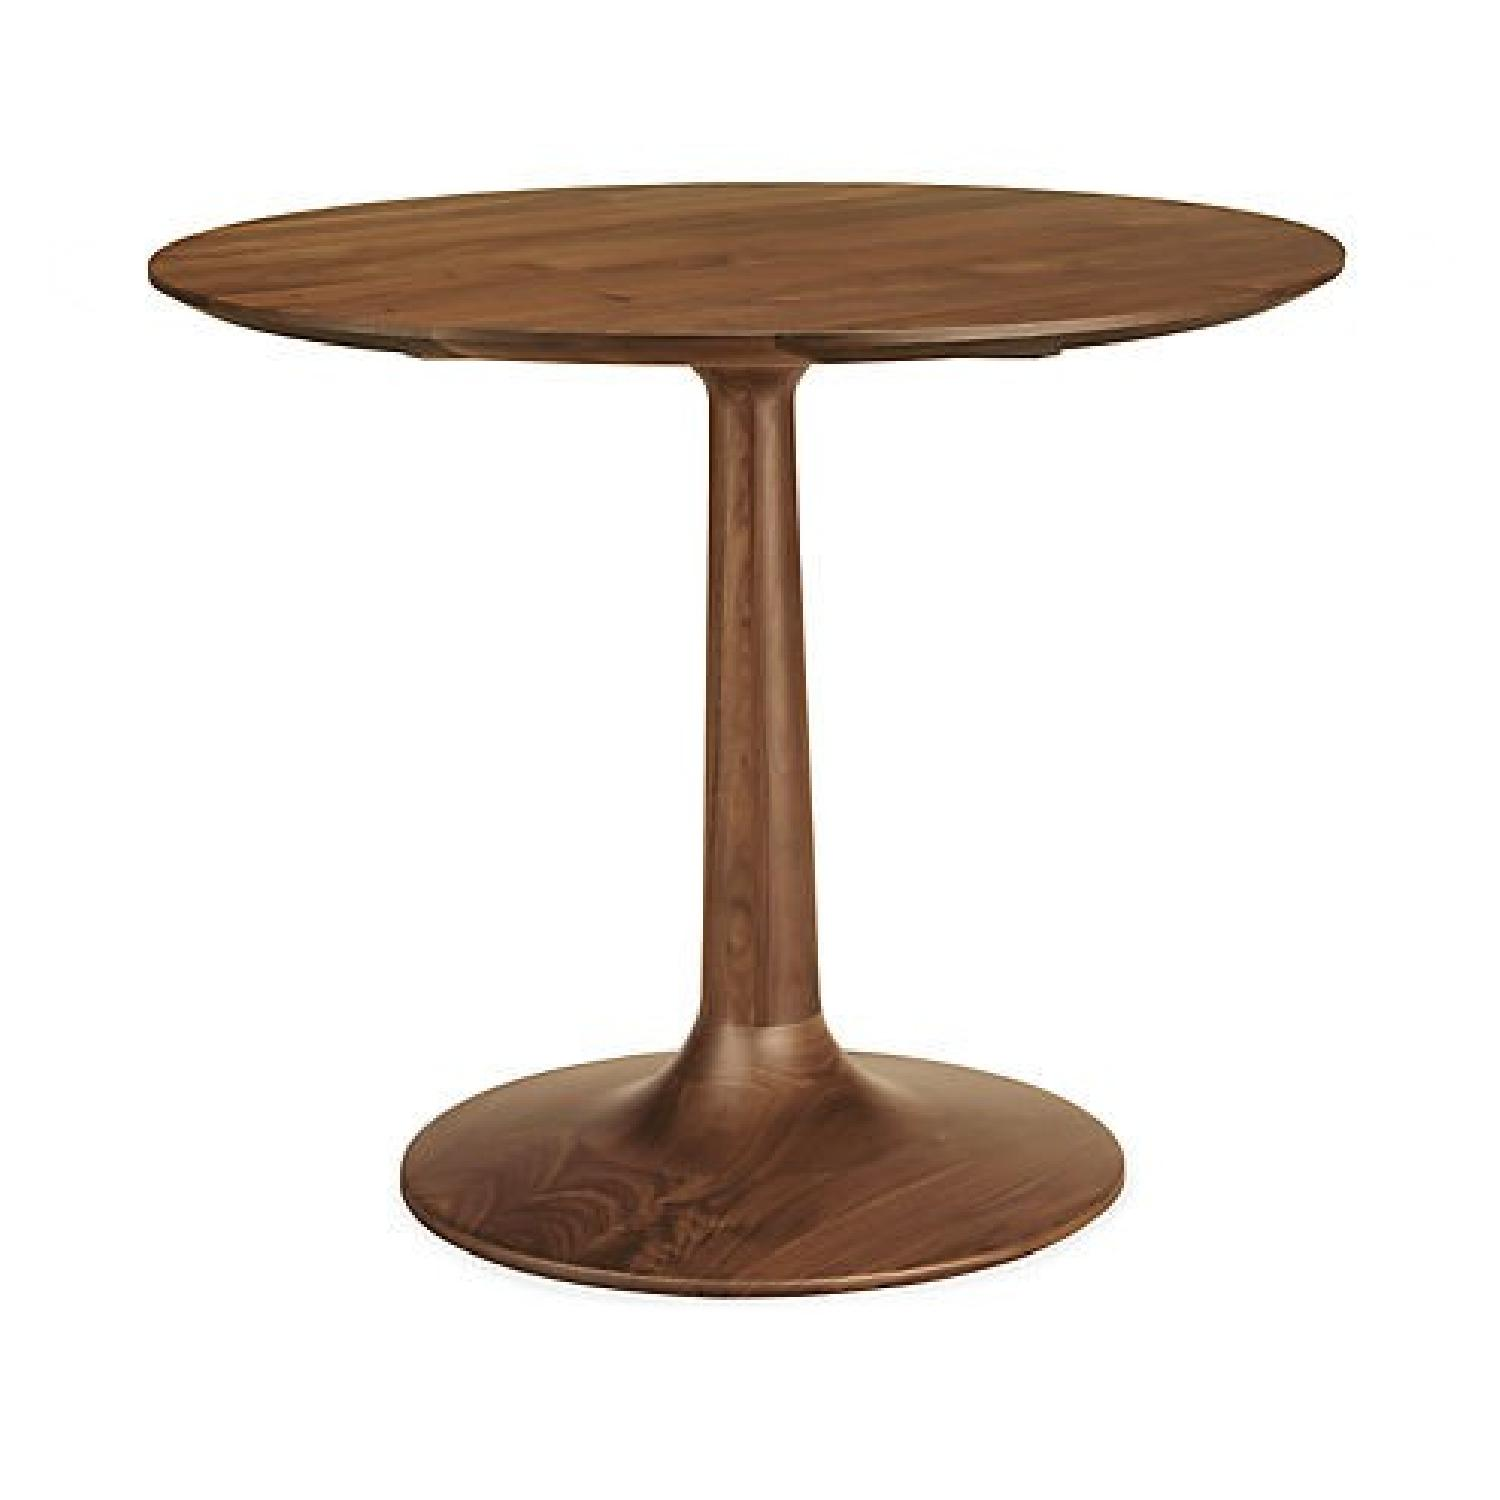 Room & Board Madison Walnut Dining Table - image-0